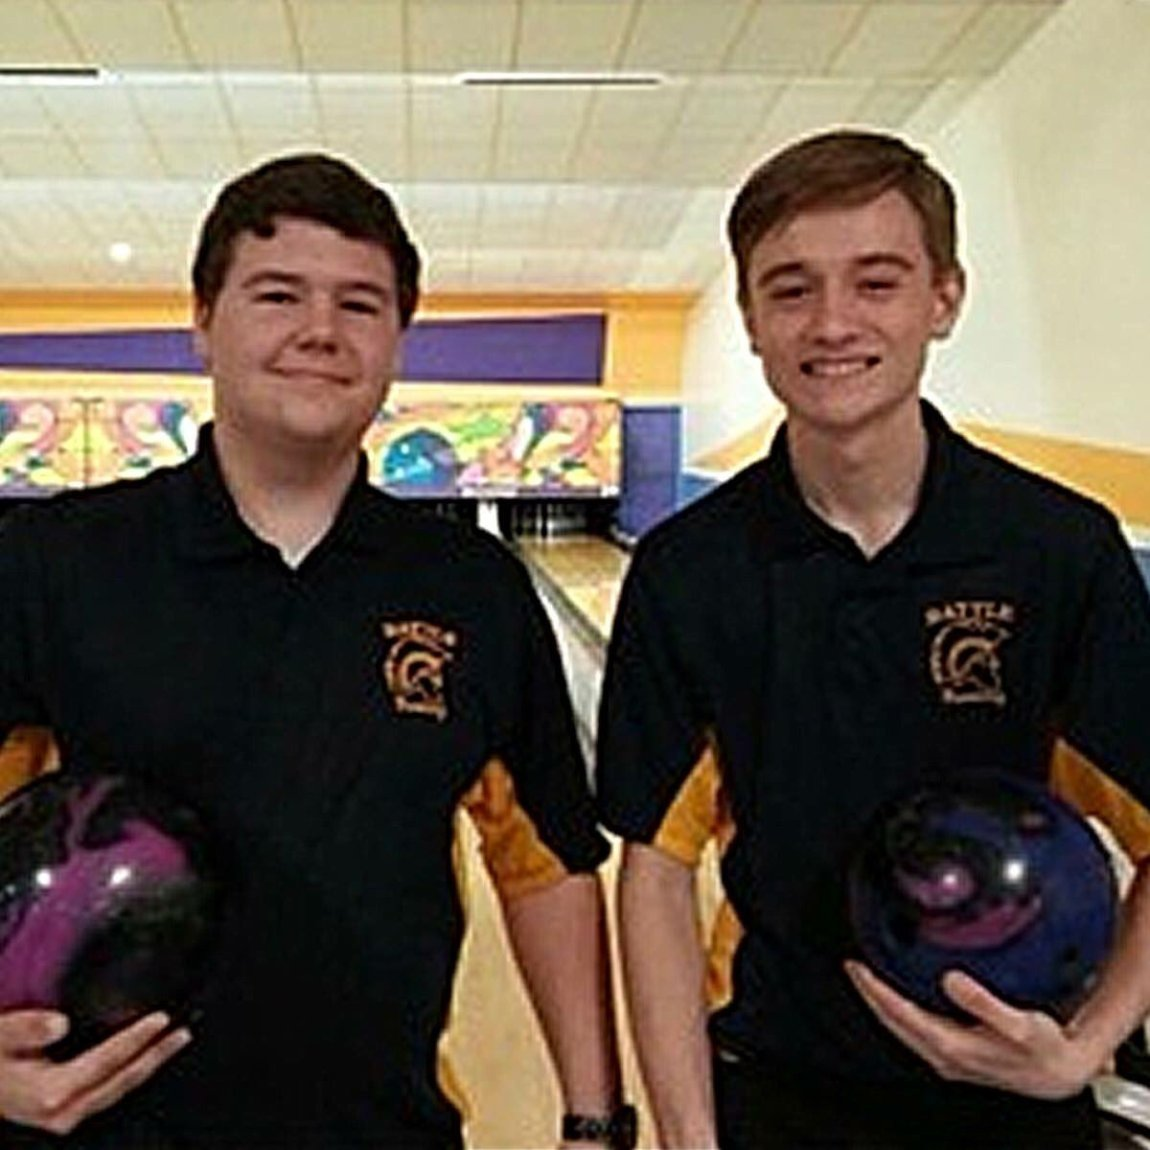 test Twitter Media - Collin Walsh and Mark Lee won the Best Bowling Pro Shops Junior Event at Sunset Lanes in St Louis, MO. Both threw the Mako for the victory! #TrackBowling #SmartBowling https://t.co/lke850miZb